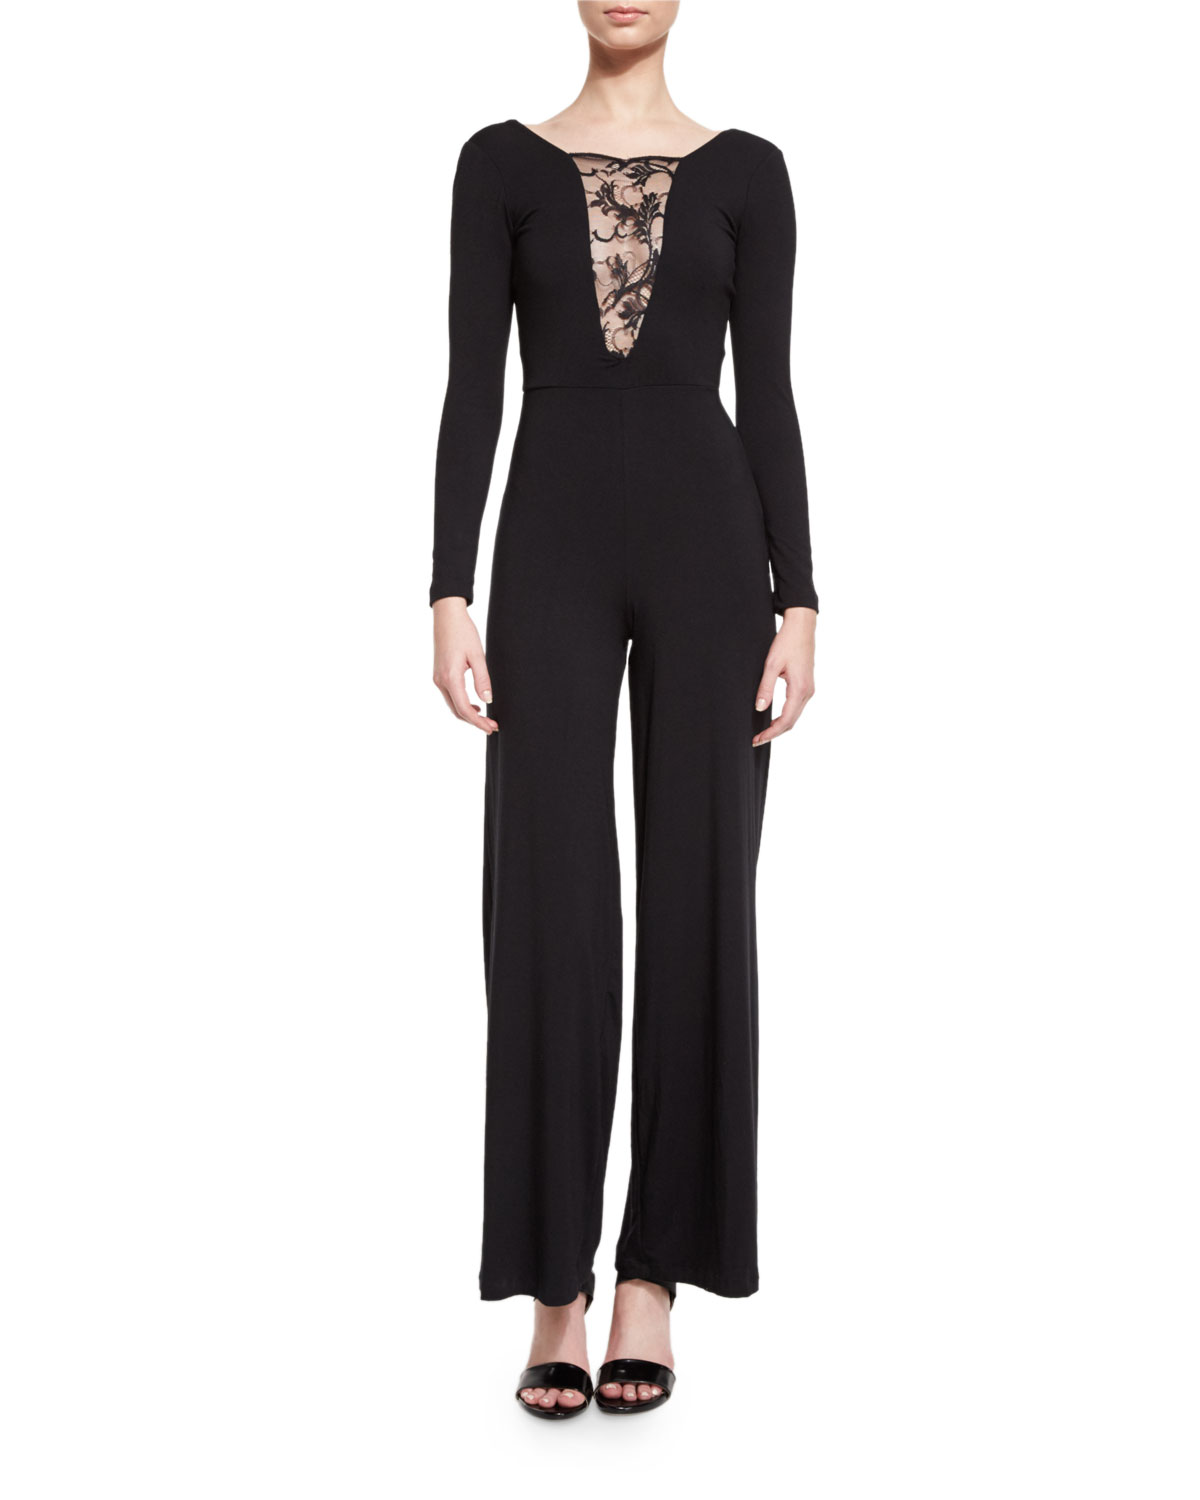 634bebaf8d30 Nightcap Clothing Lace-Inset Long-Sleeve Jumpsuit